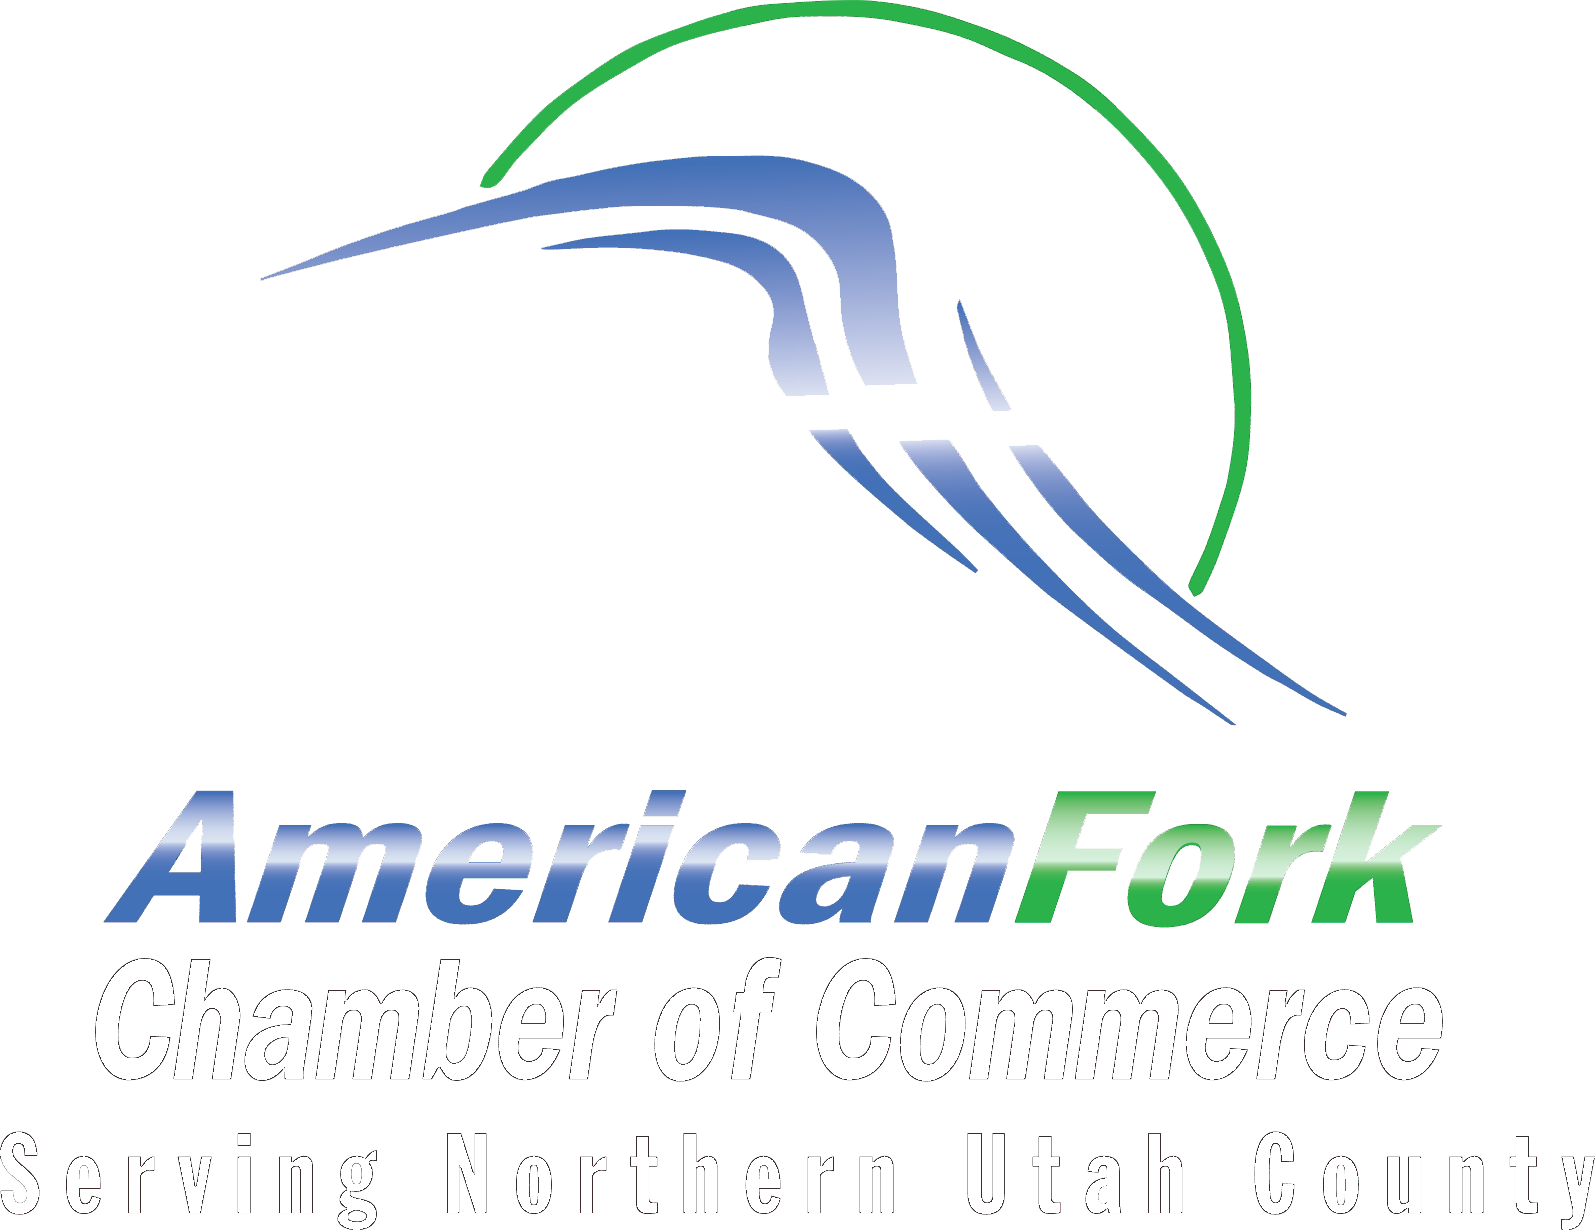 af chamber logo_white Letters.png